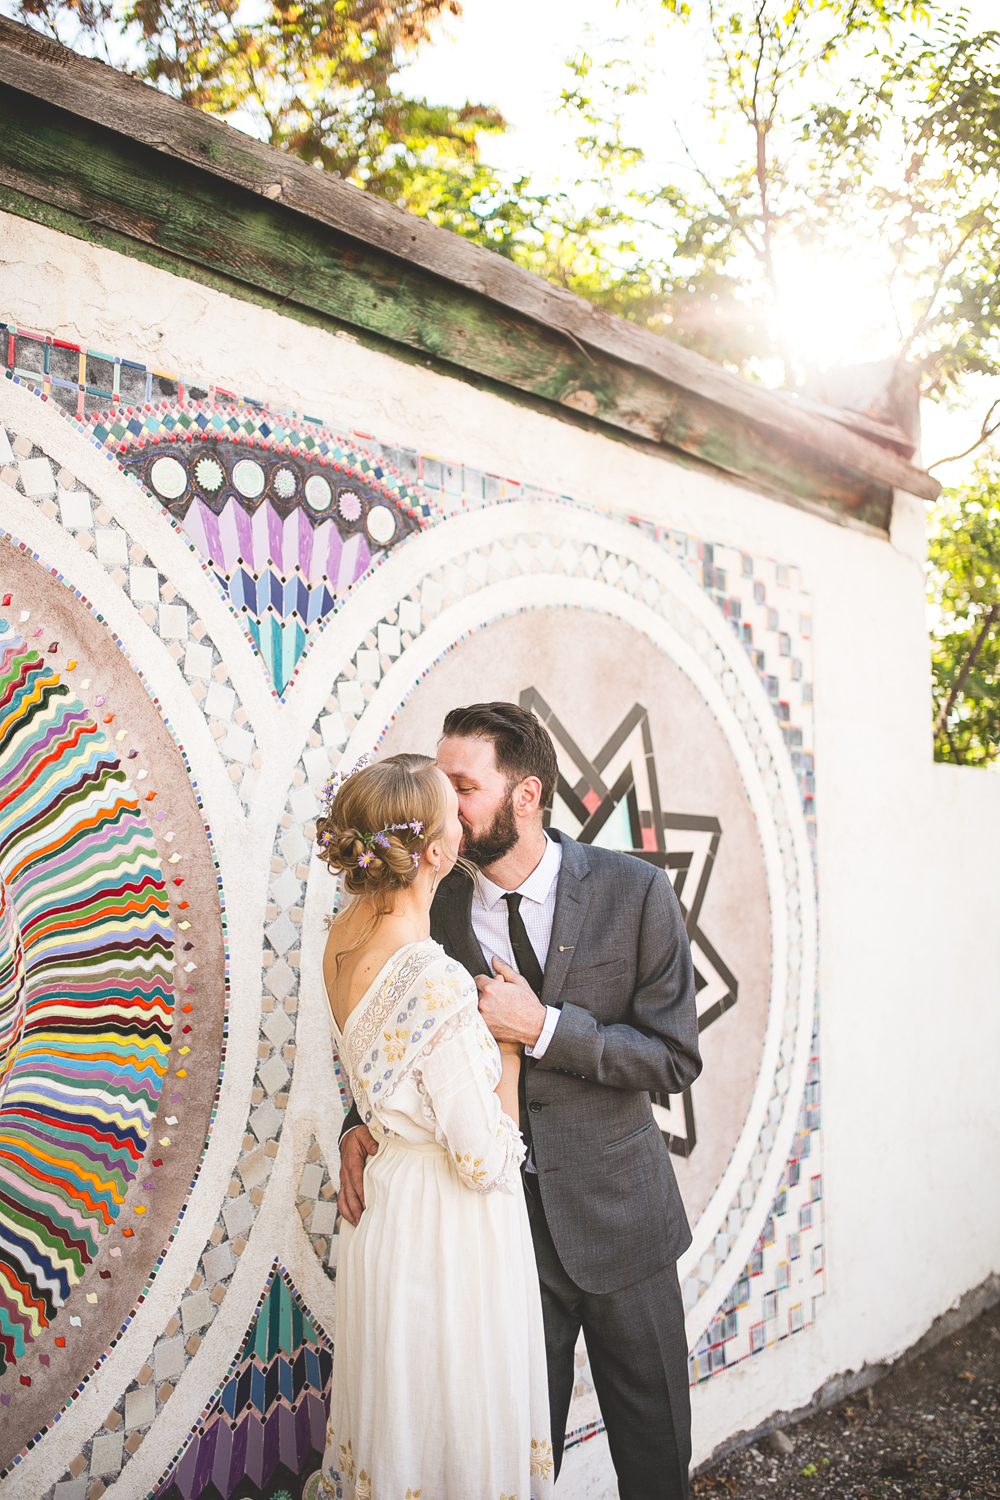 Ben + Chelsea | Albuquerque, New Mexico Wedding | Casas De Suenos | Liz Anne Photography57.jpg